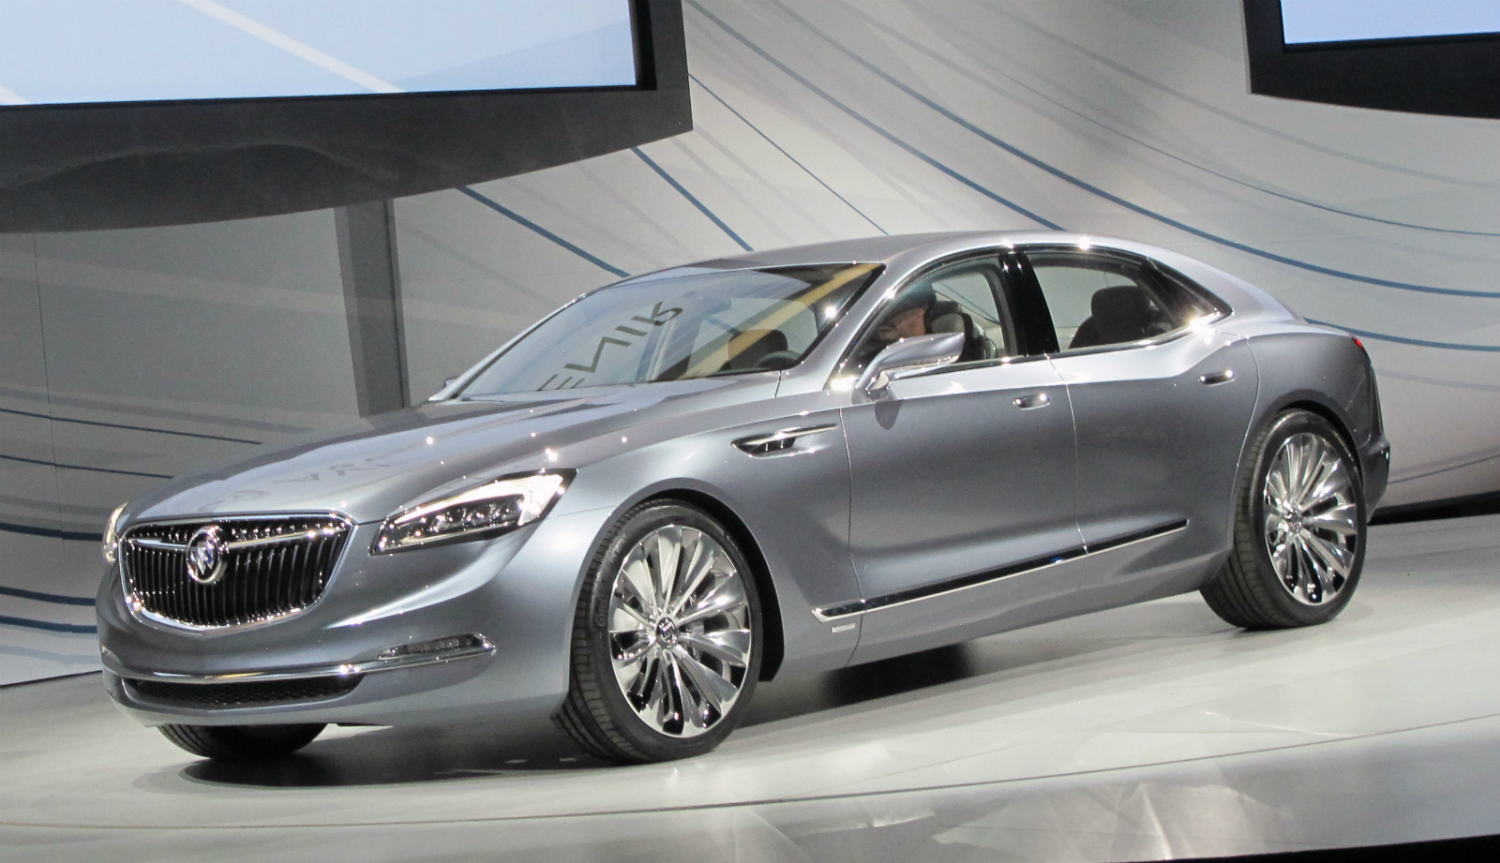 Buick Avenir Concept At Naias Wheels Ca HD Wallpapers Download free images and photos [musssic.tk]